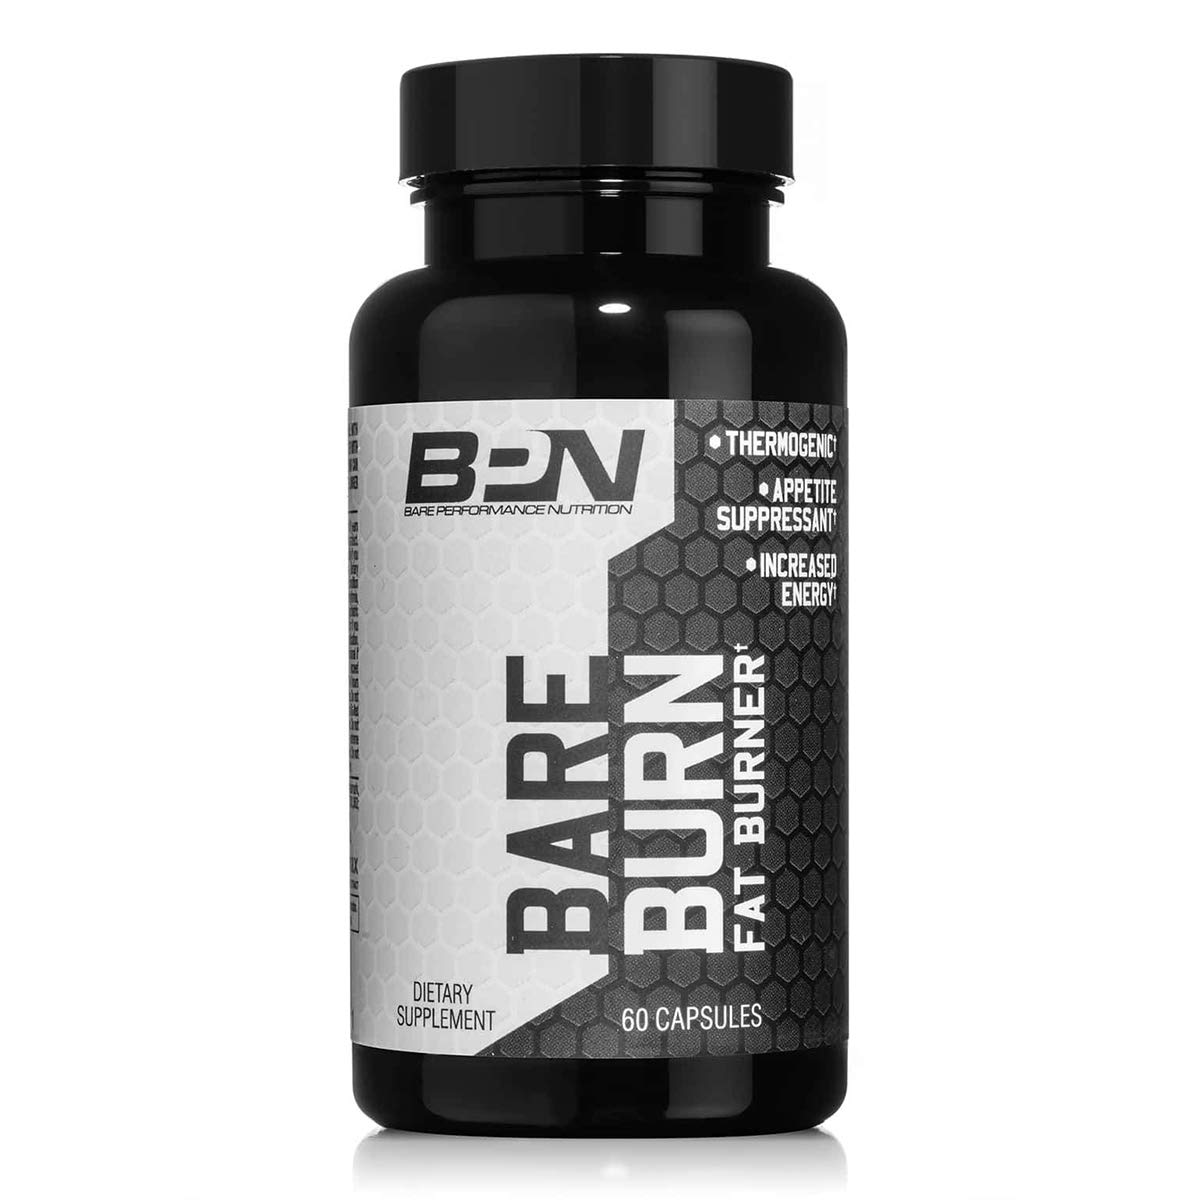 Bare Performance Nutrition, Fat Burner, Fat Burning Complex & Thermogenic, Suppress Appetite, Long Lasting Energy & Great for Fasting, Trademark Ingredients (60 Capsules)